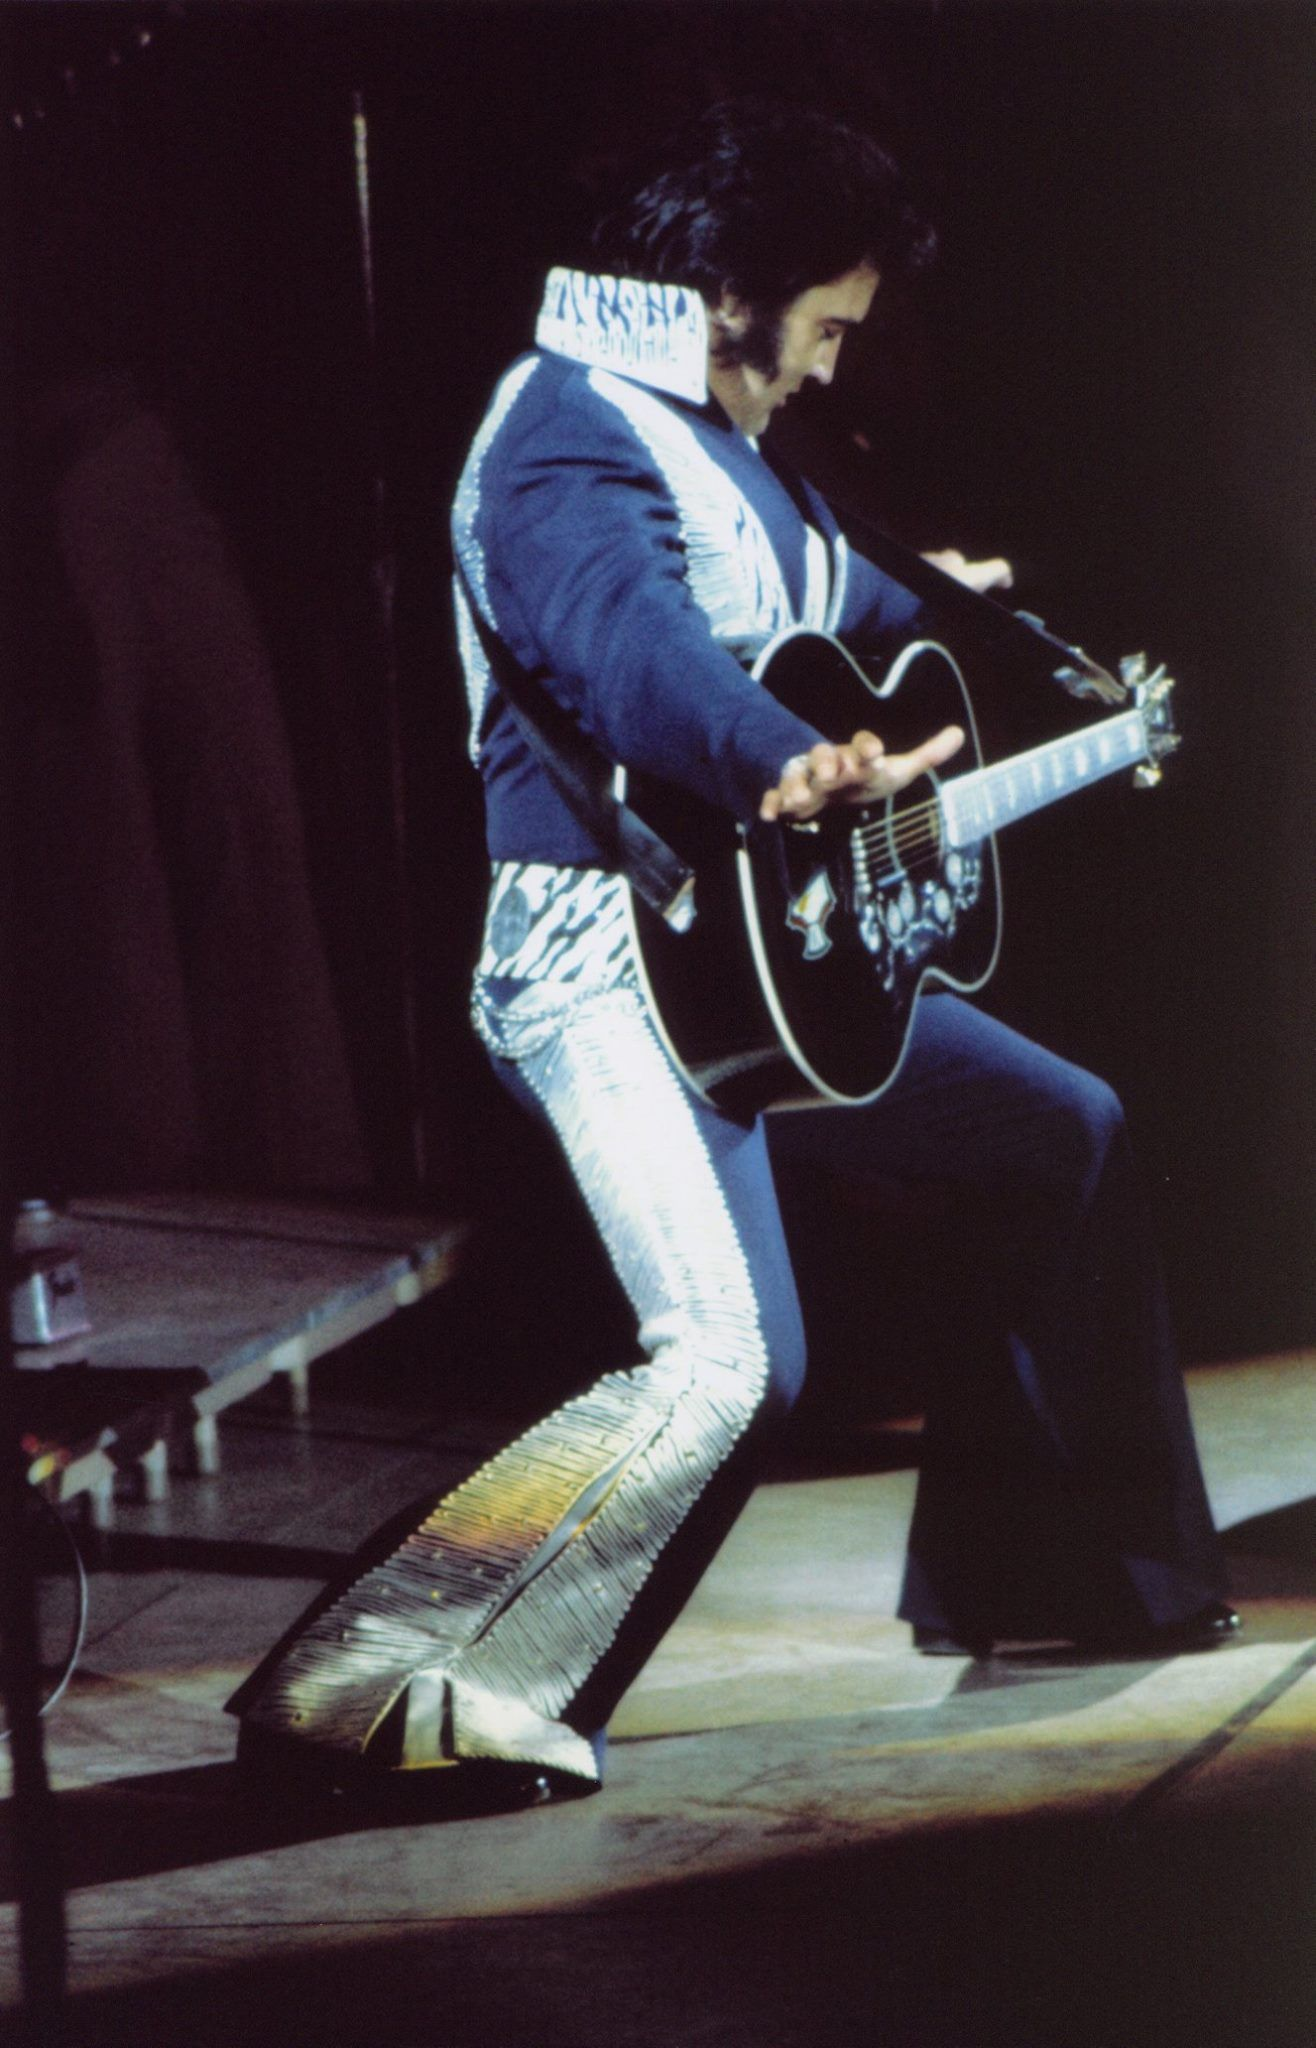 Huntsville, Al. May 30, 1975~Close enough to have gone. I sure wish I had. :'(